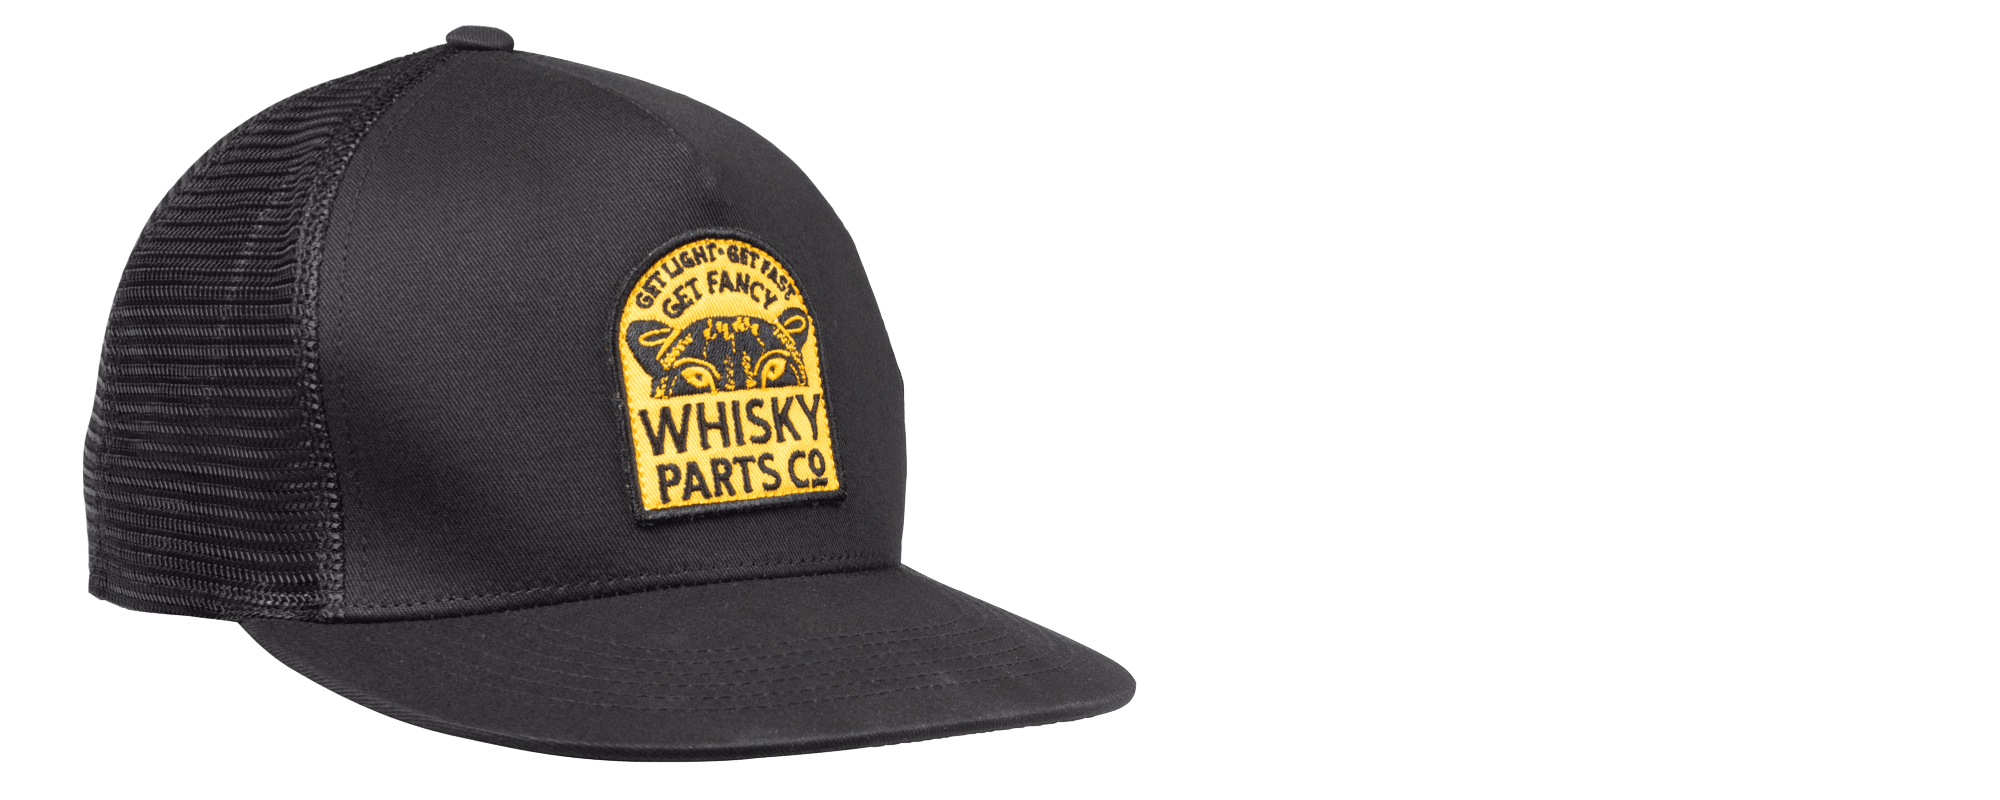 Whisky Parts Co Fancy Cat Coalition Hat - Black/Yellow - Front three-quarter view